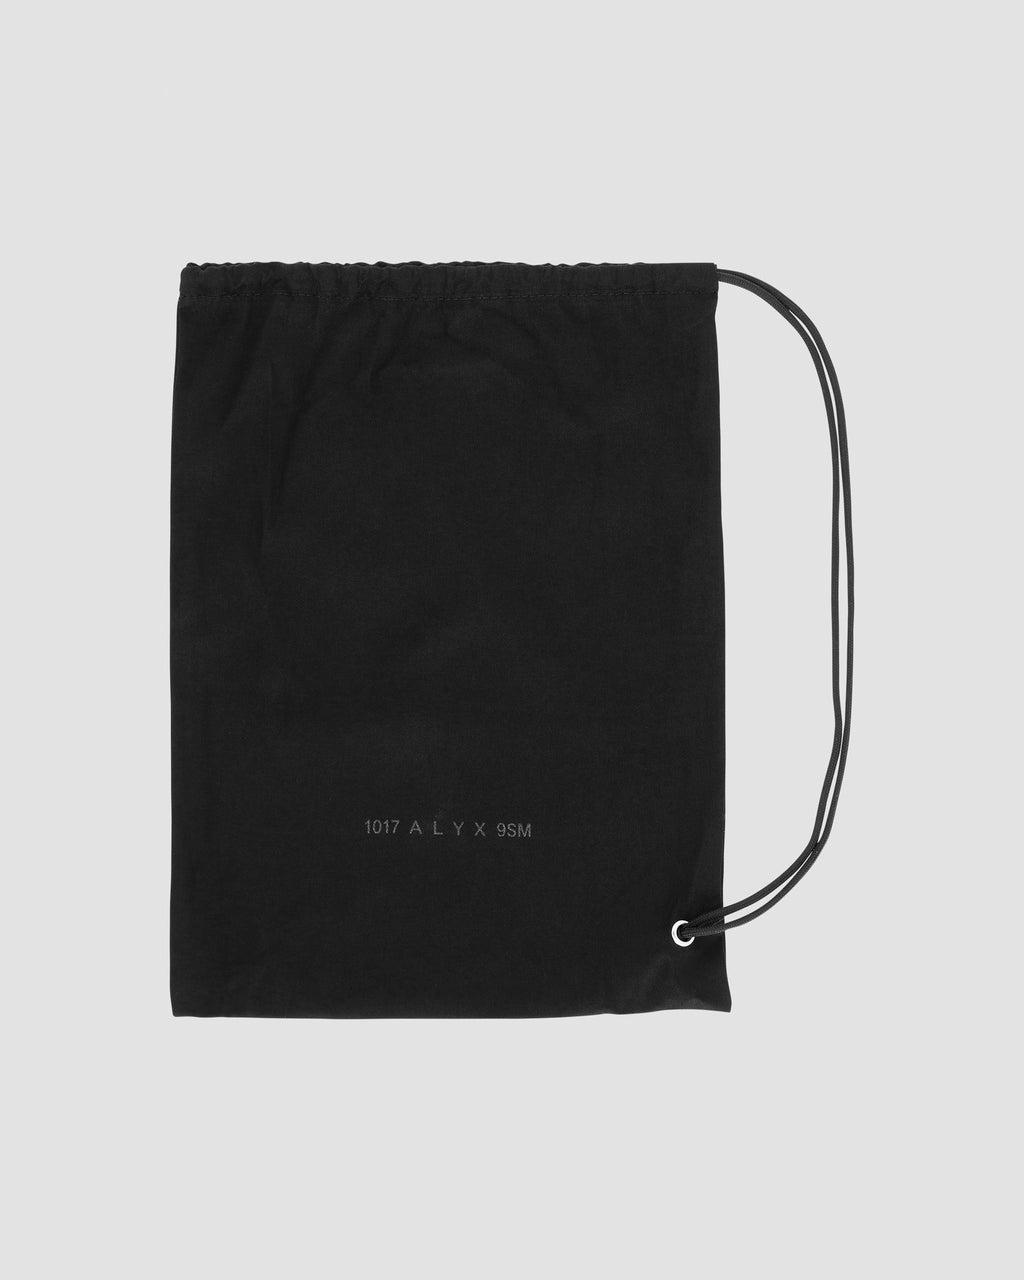 1017 ALYX 9SM | SMALL WAIST POUCH | Bag | Accessories, Bag Online, Black, Man, S19, Woman